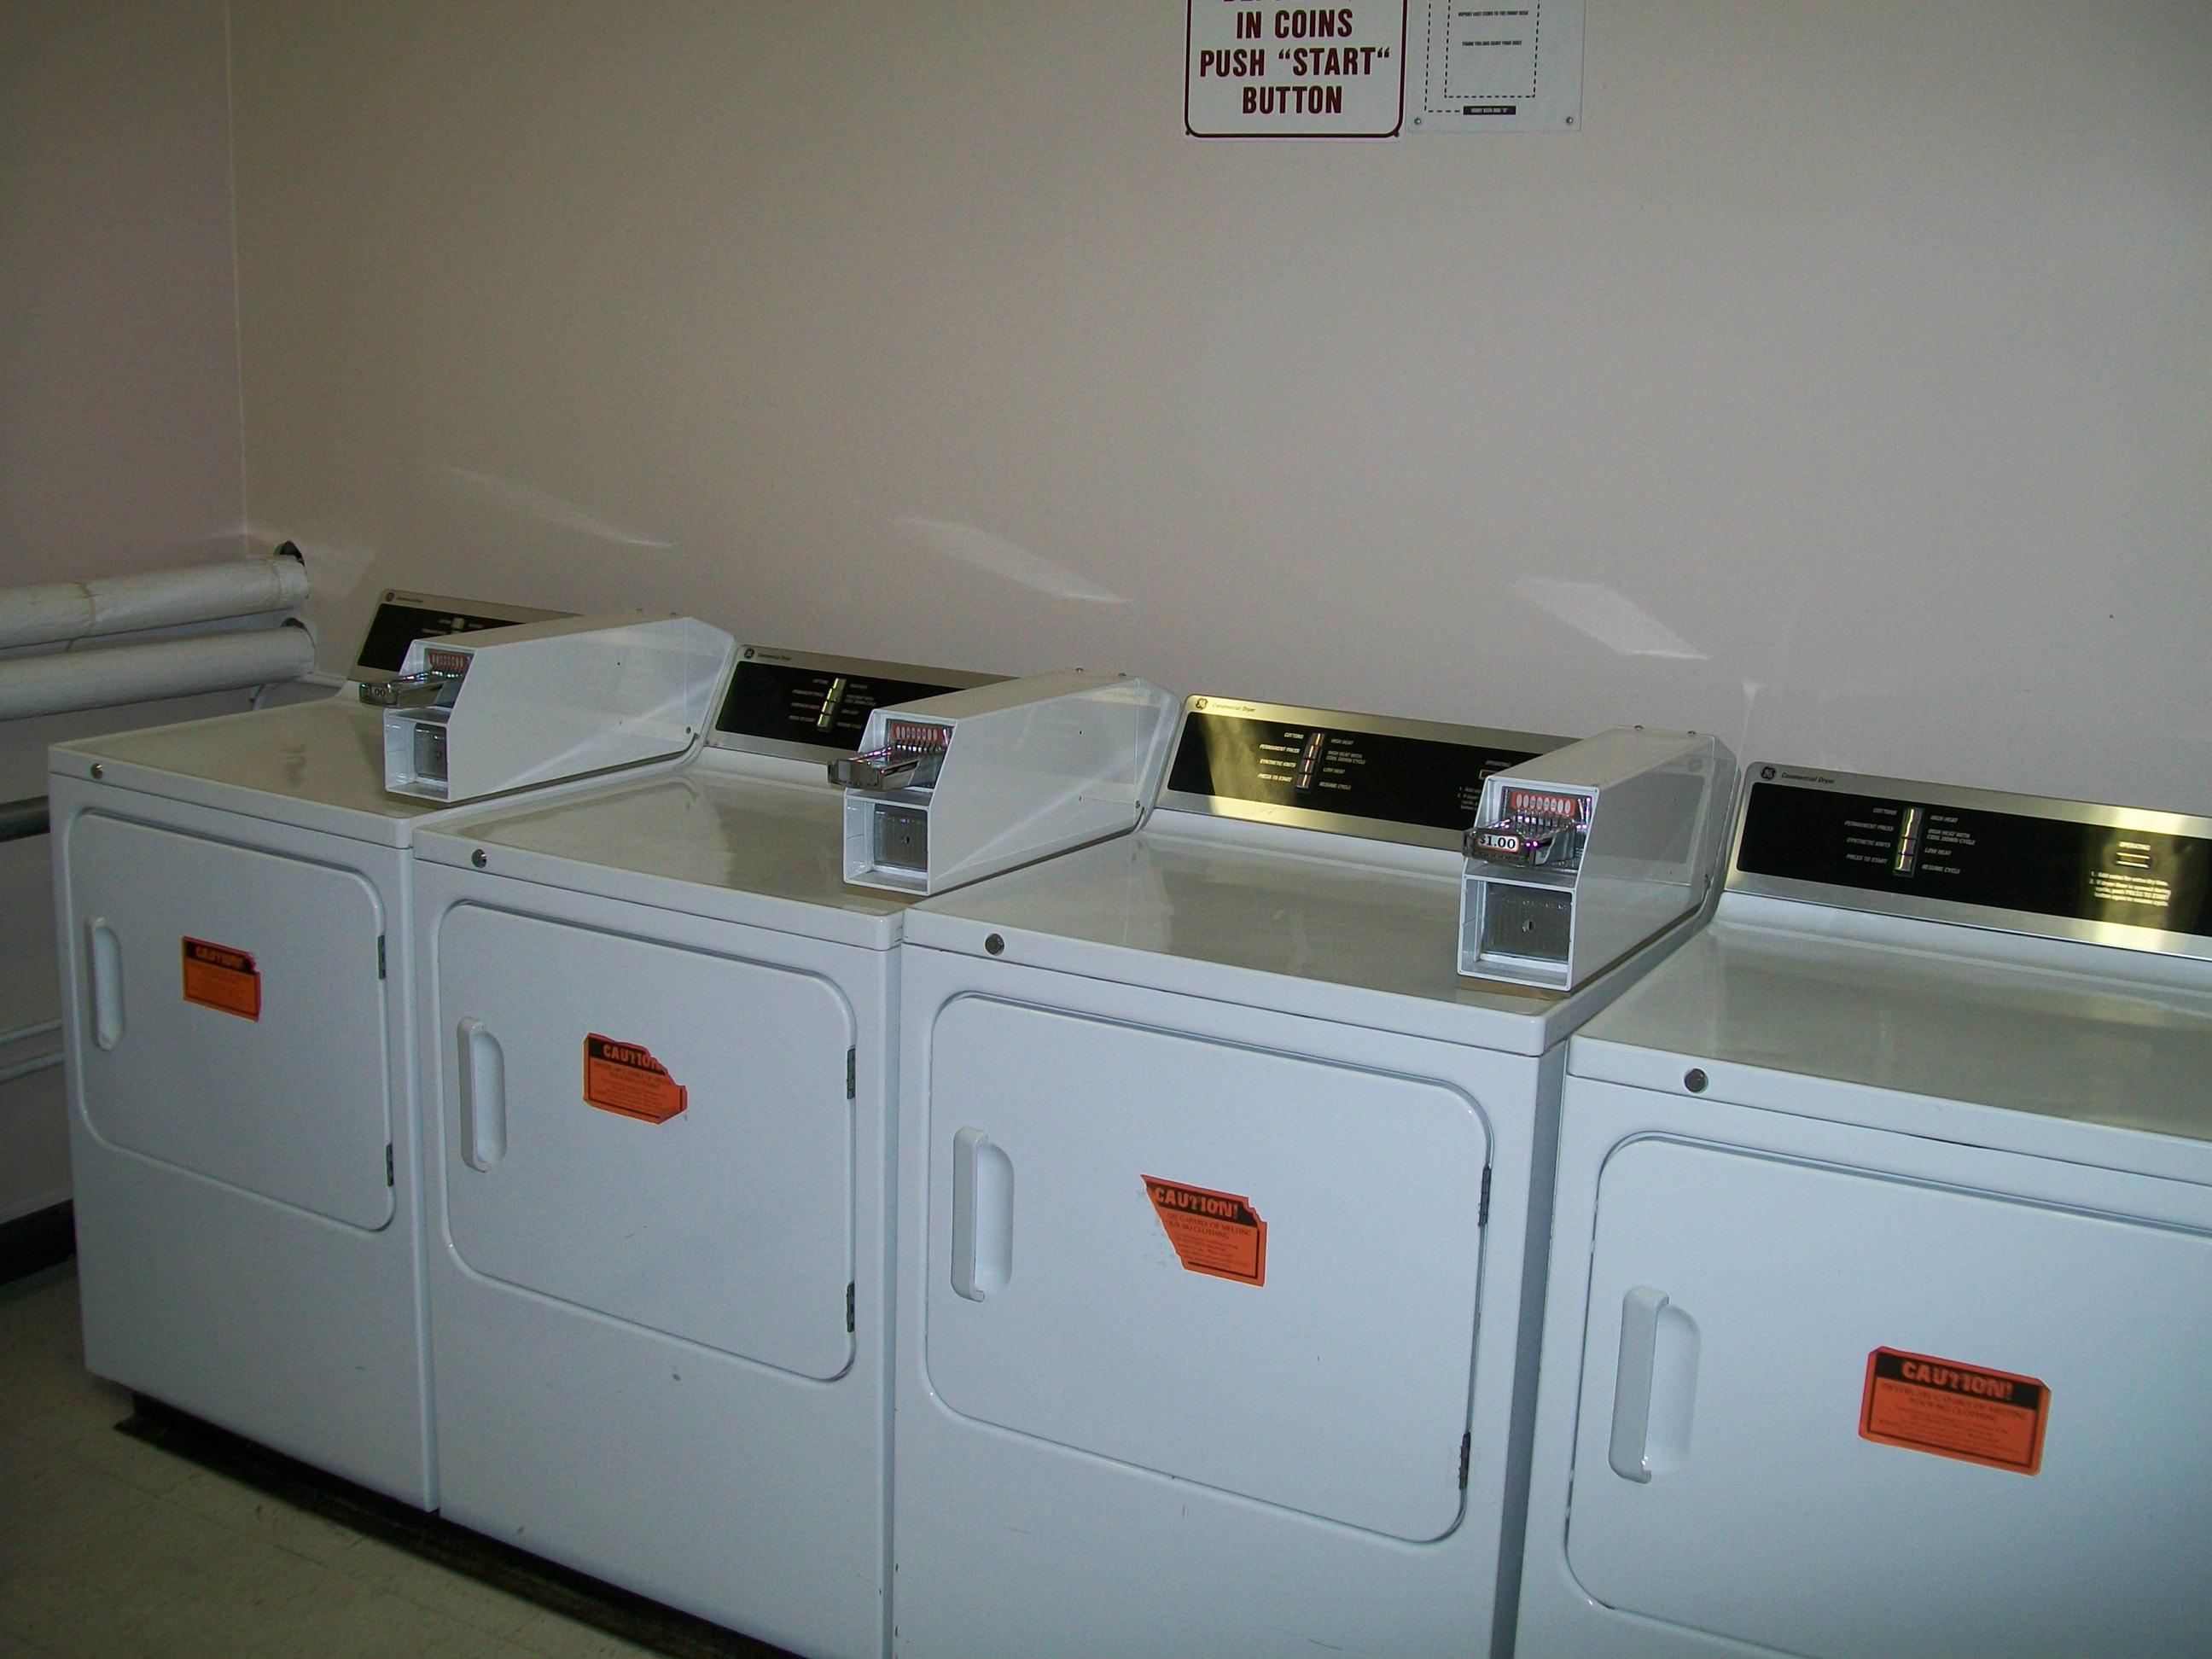 Community (coin) washer/dryer is just down the hallway